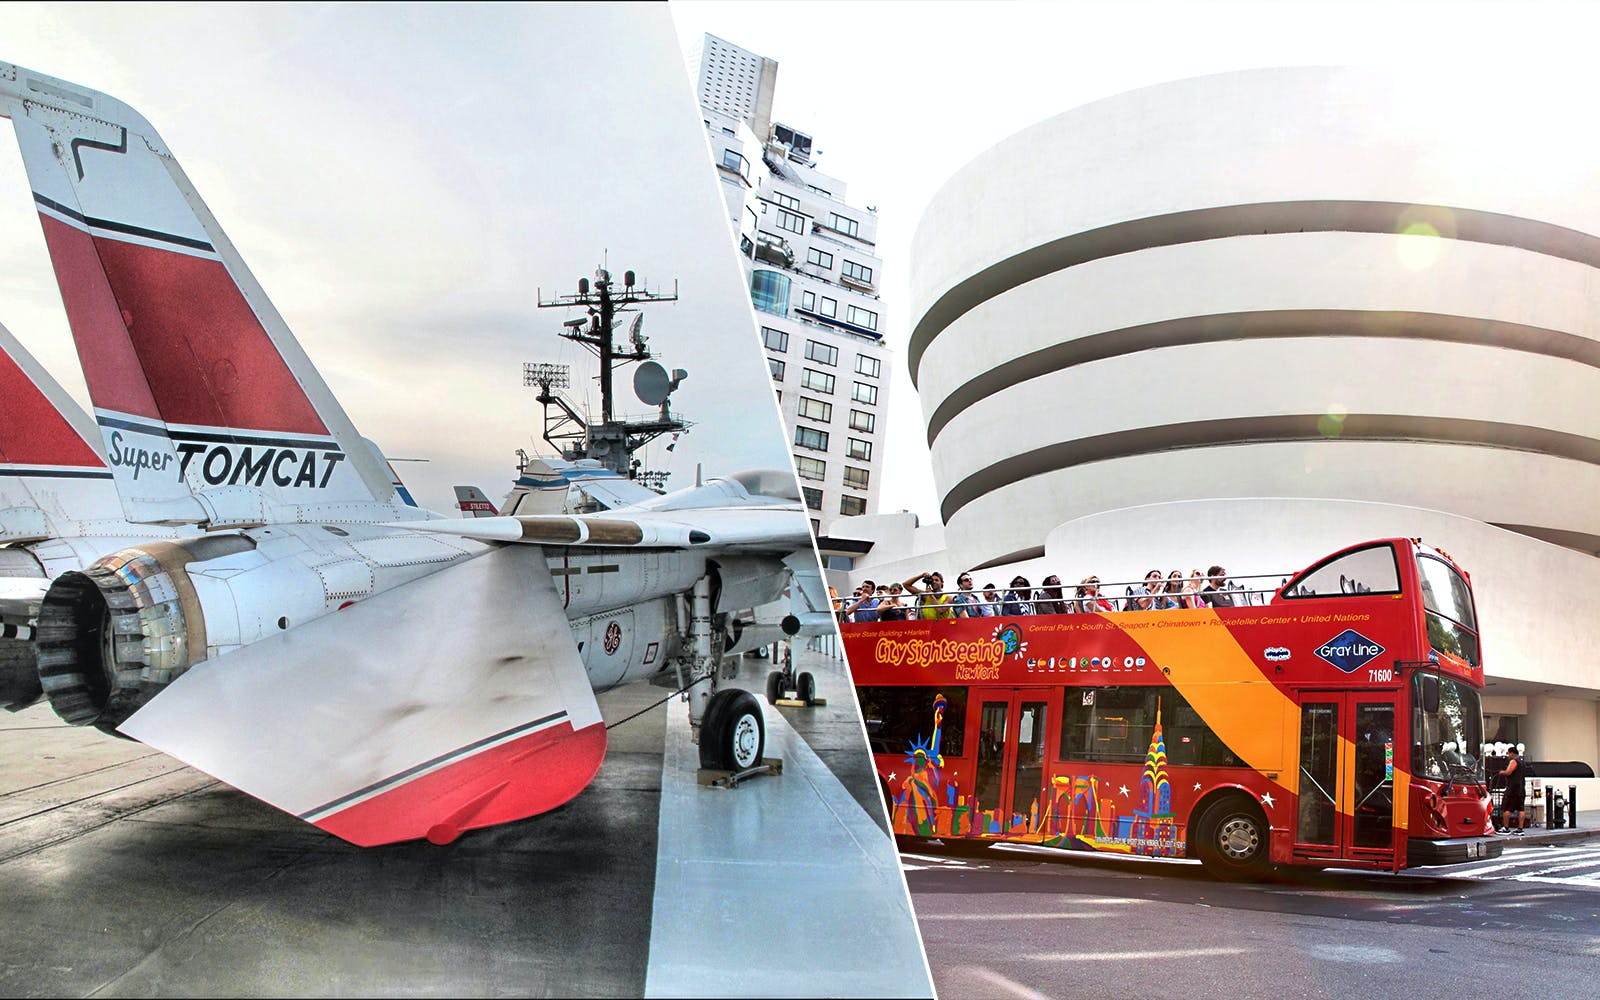 Skip the Line Access to Intrepid Museum & Hop On Hop Off Combo